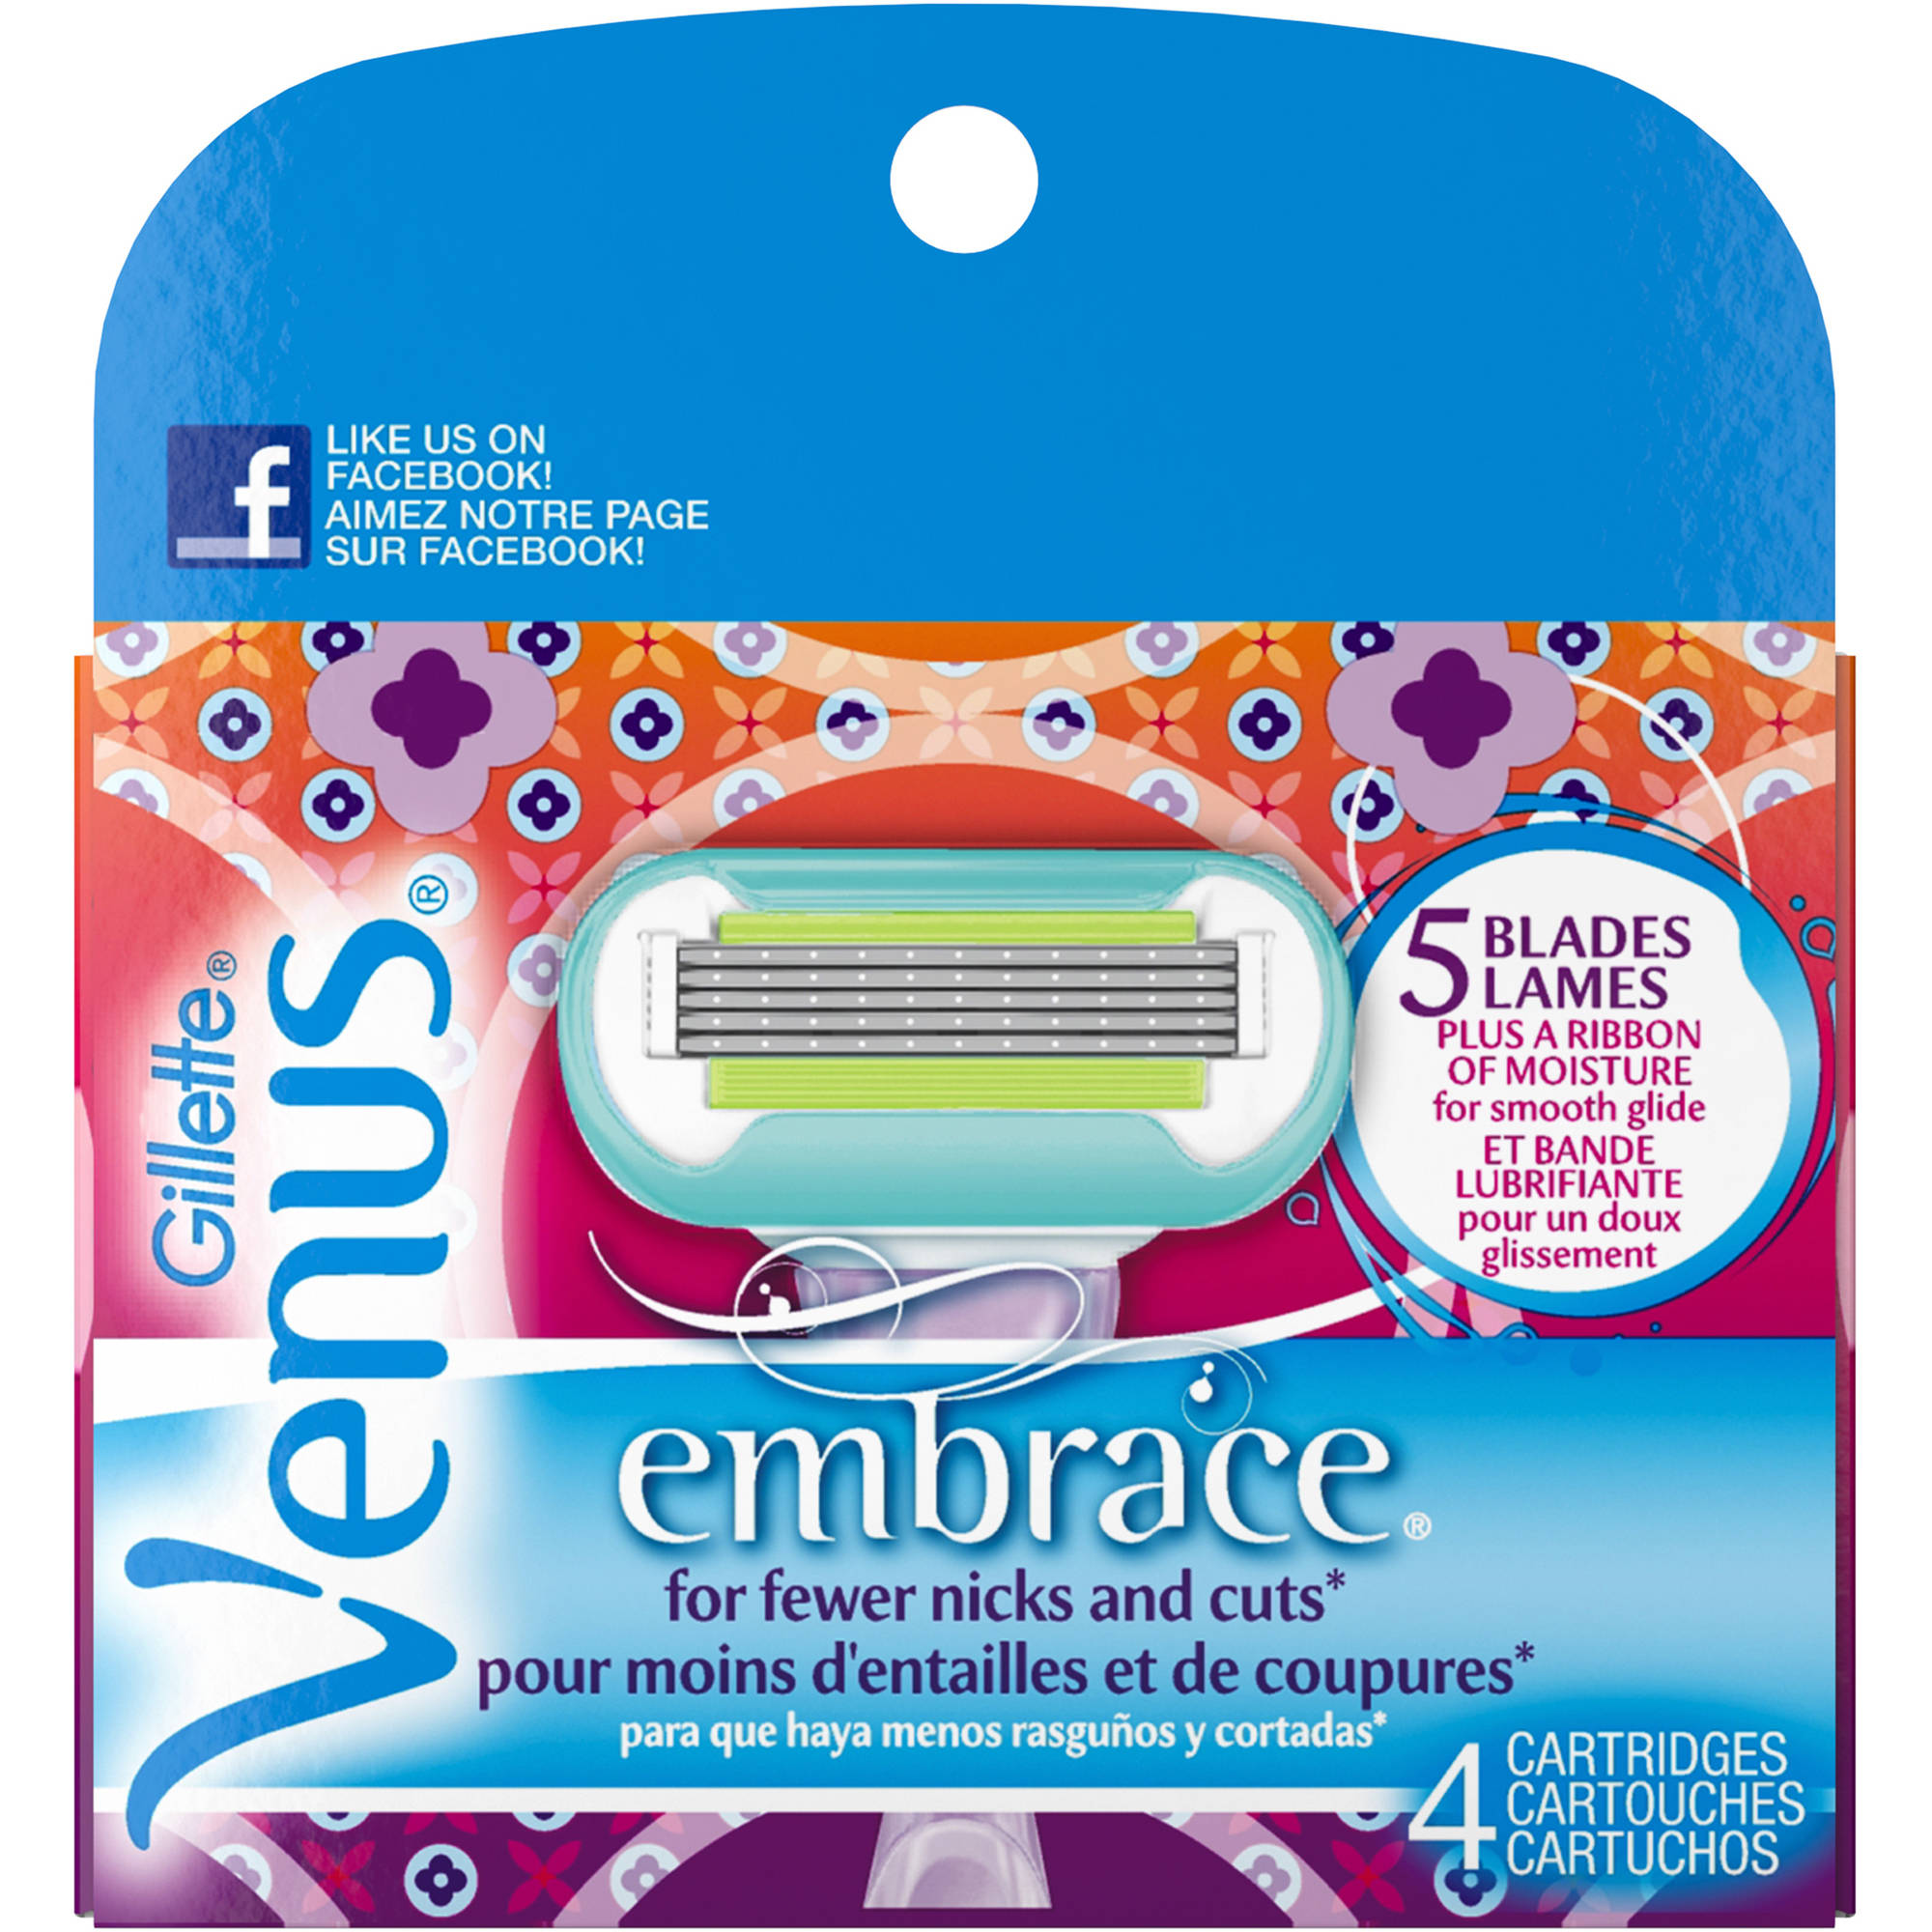 Gillette Venus Embrace Purple Women's Razor Refills, 4 count